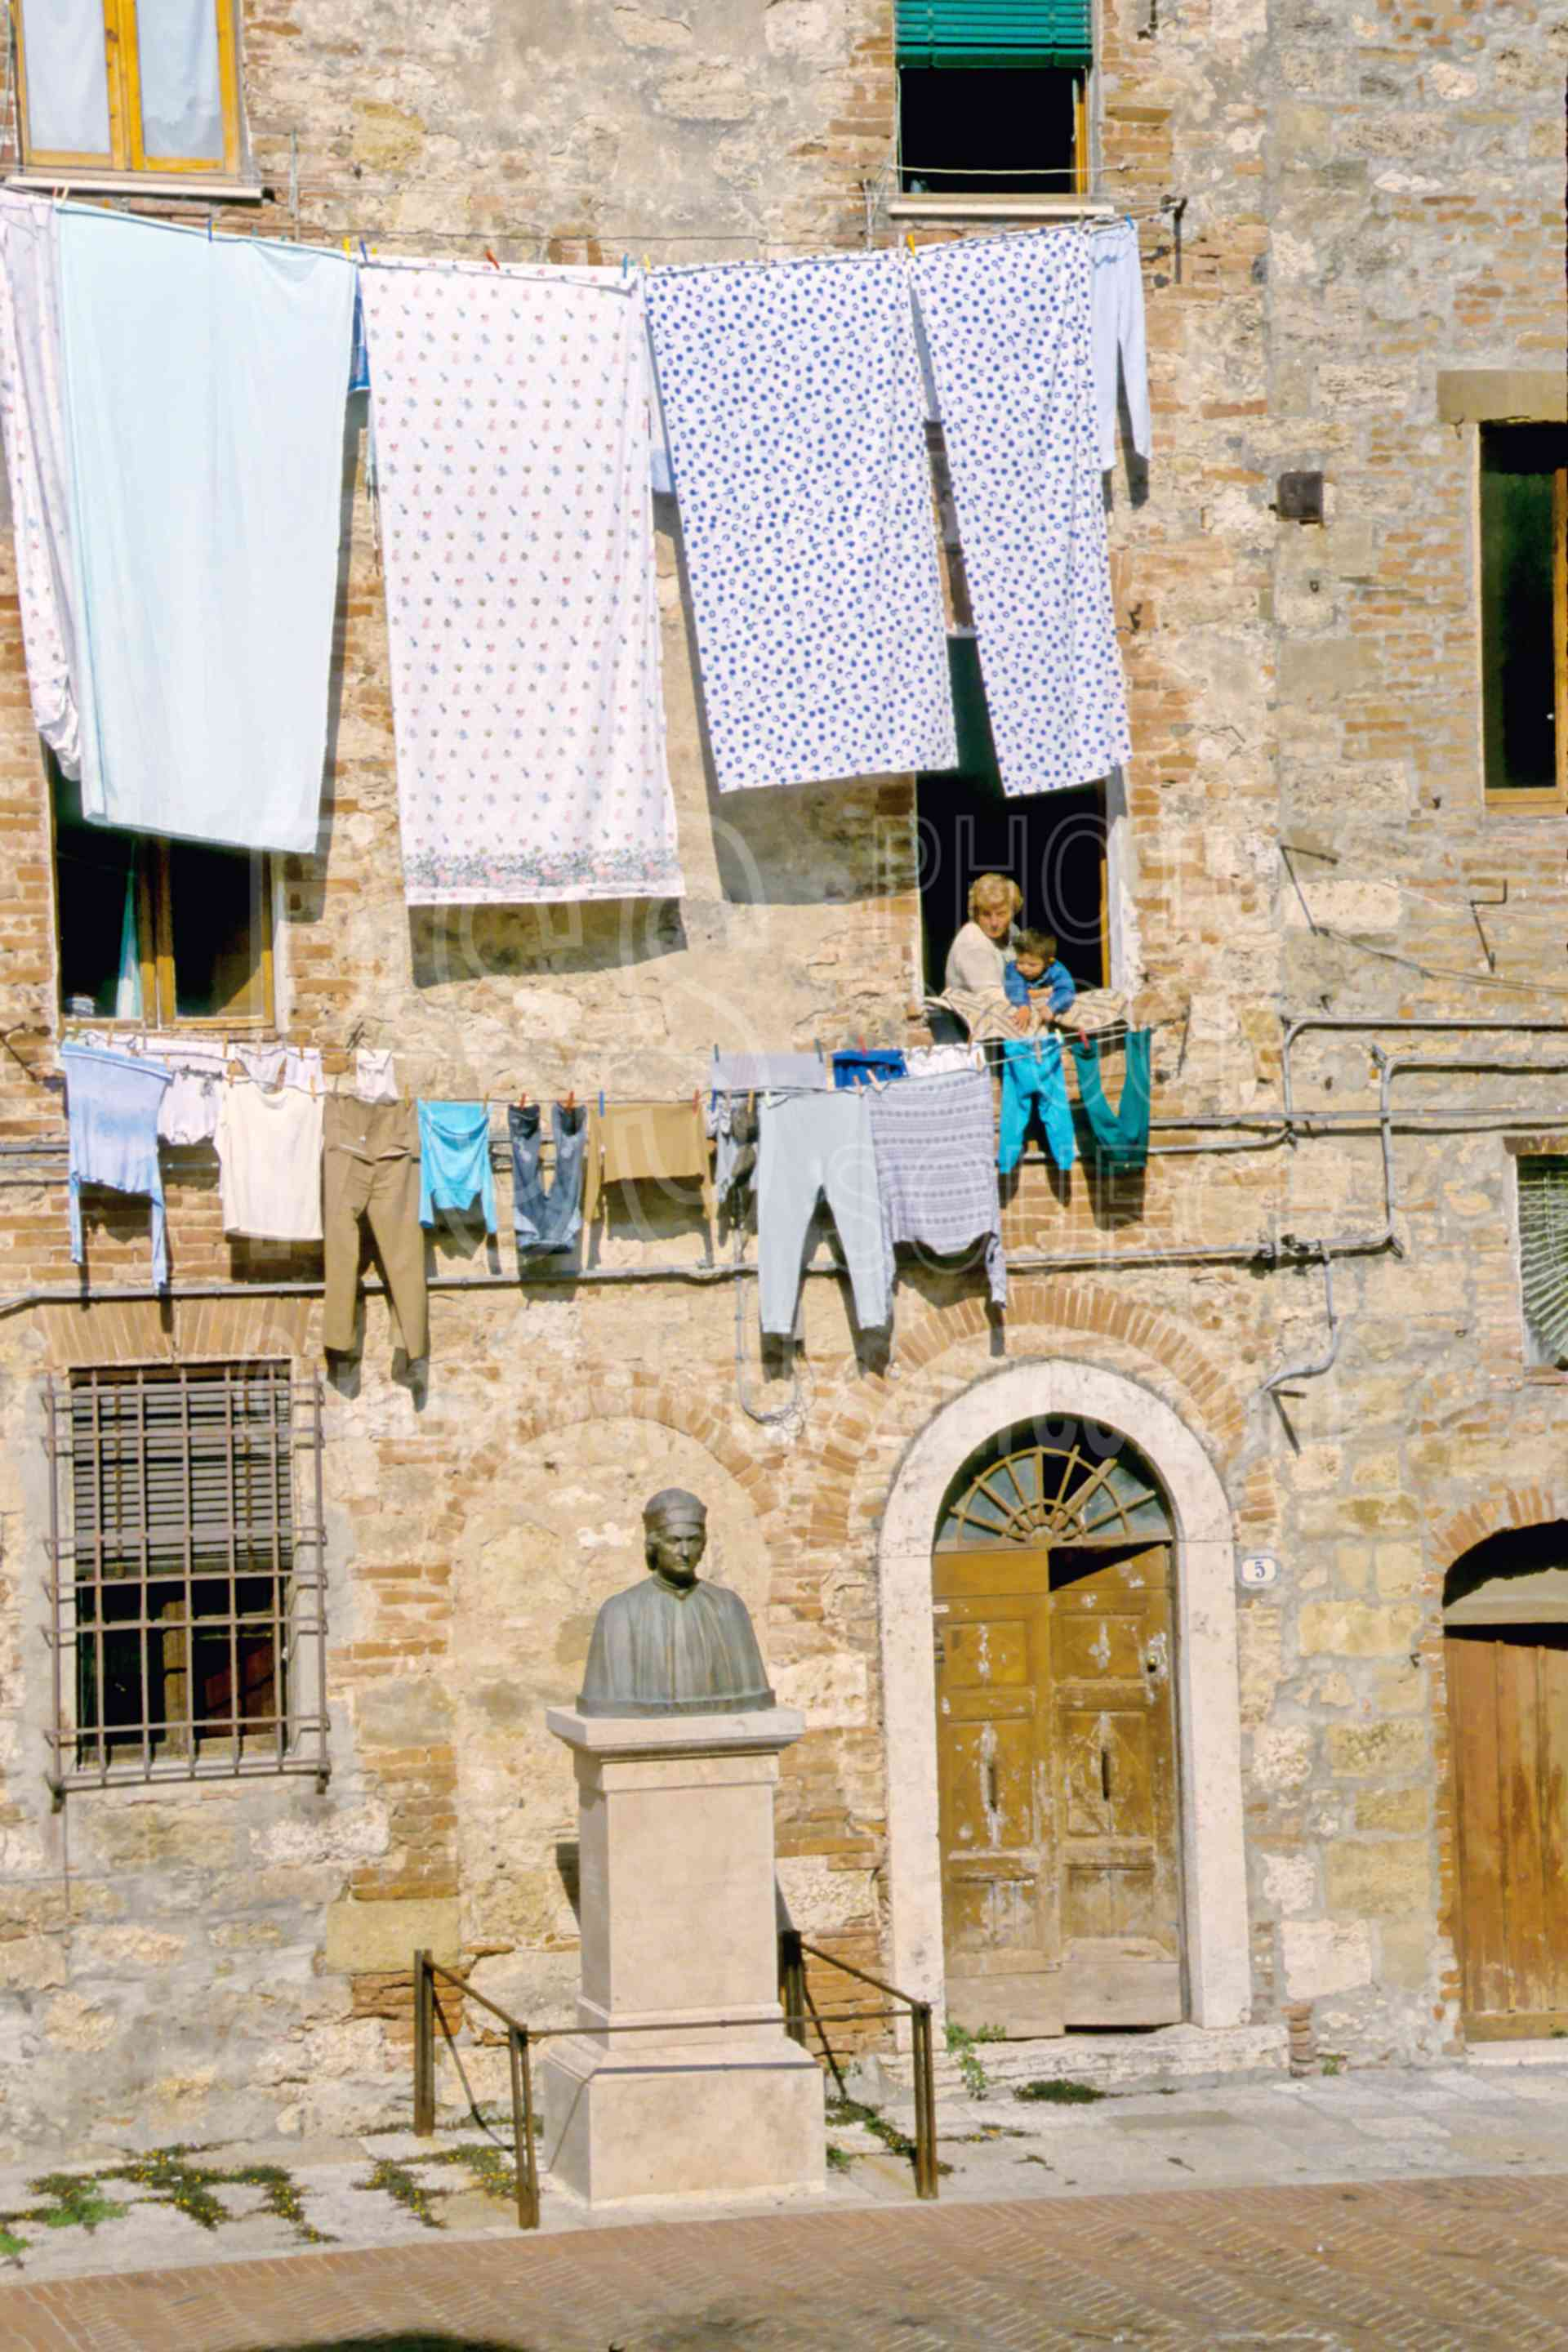 Grandmother and Child,laundry